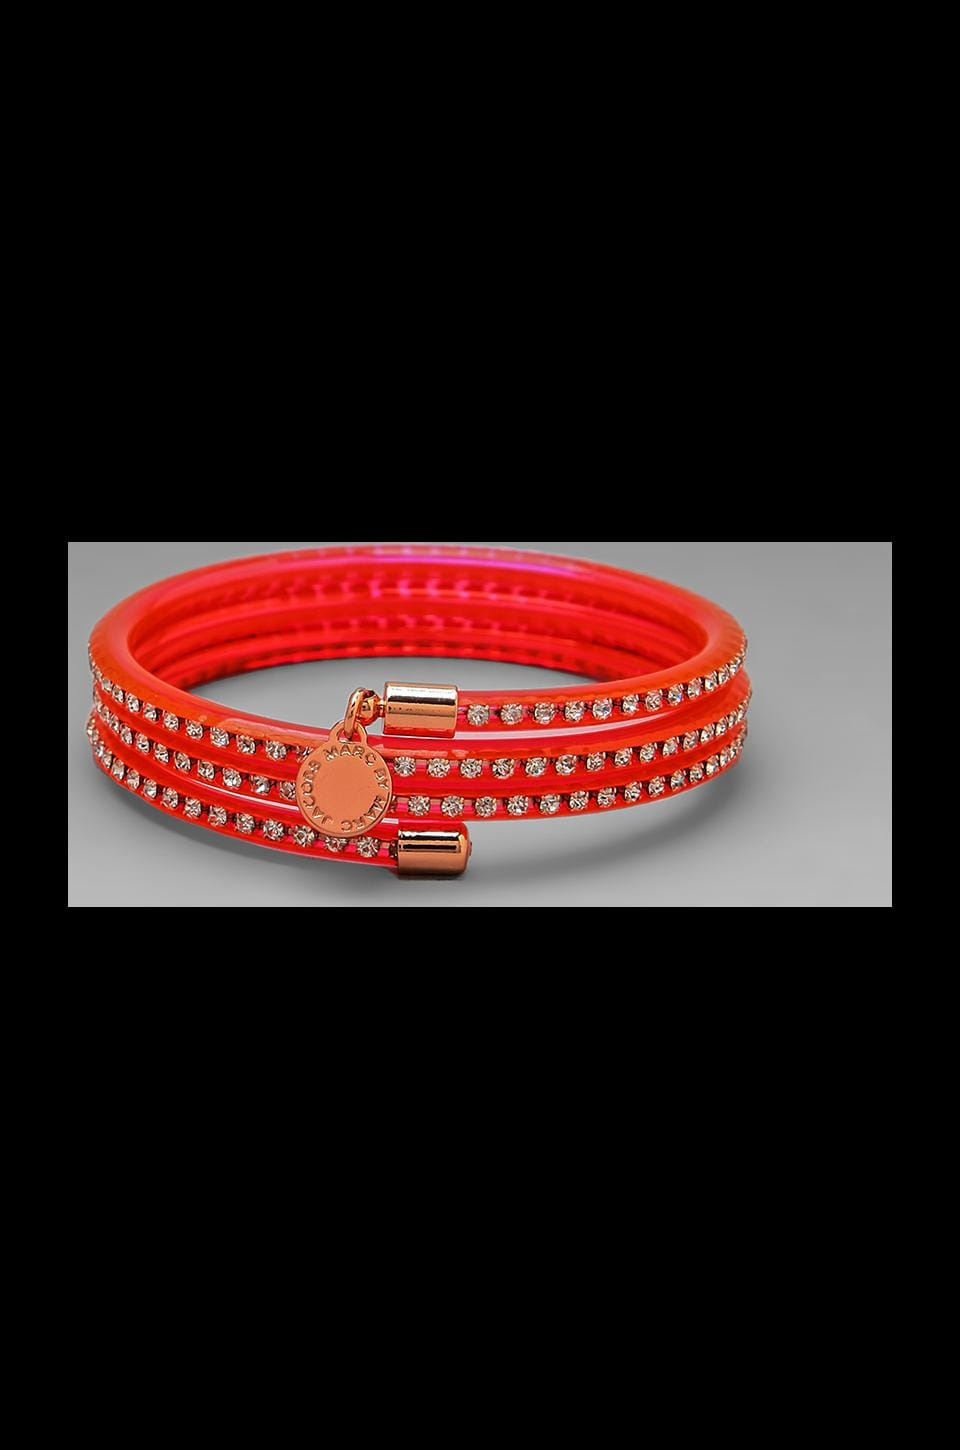 Marc by Marc Jacobs Slinky Bangle in Knockout Pink